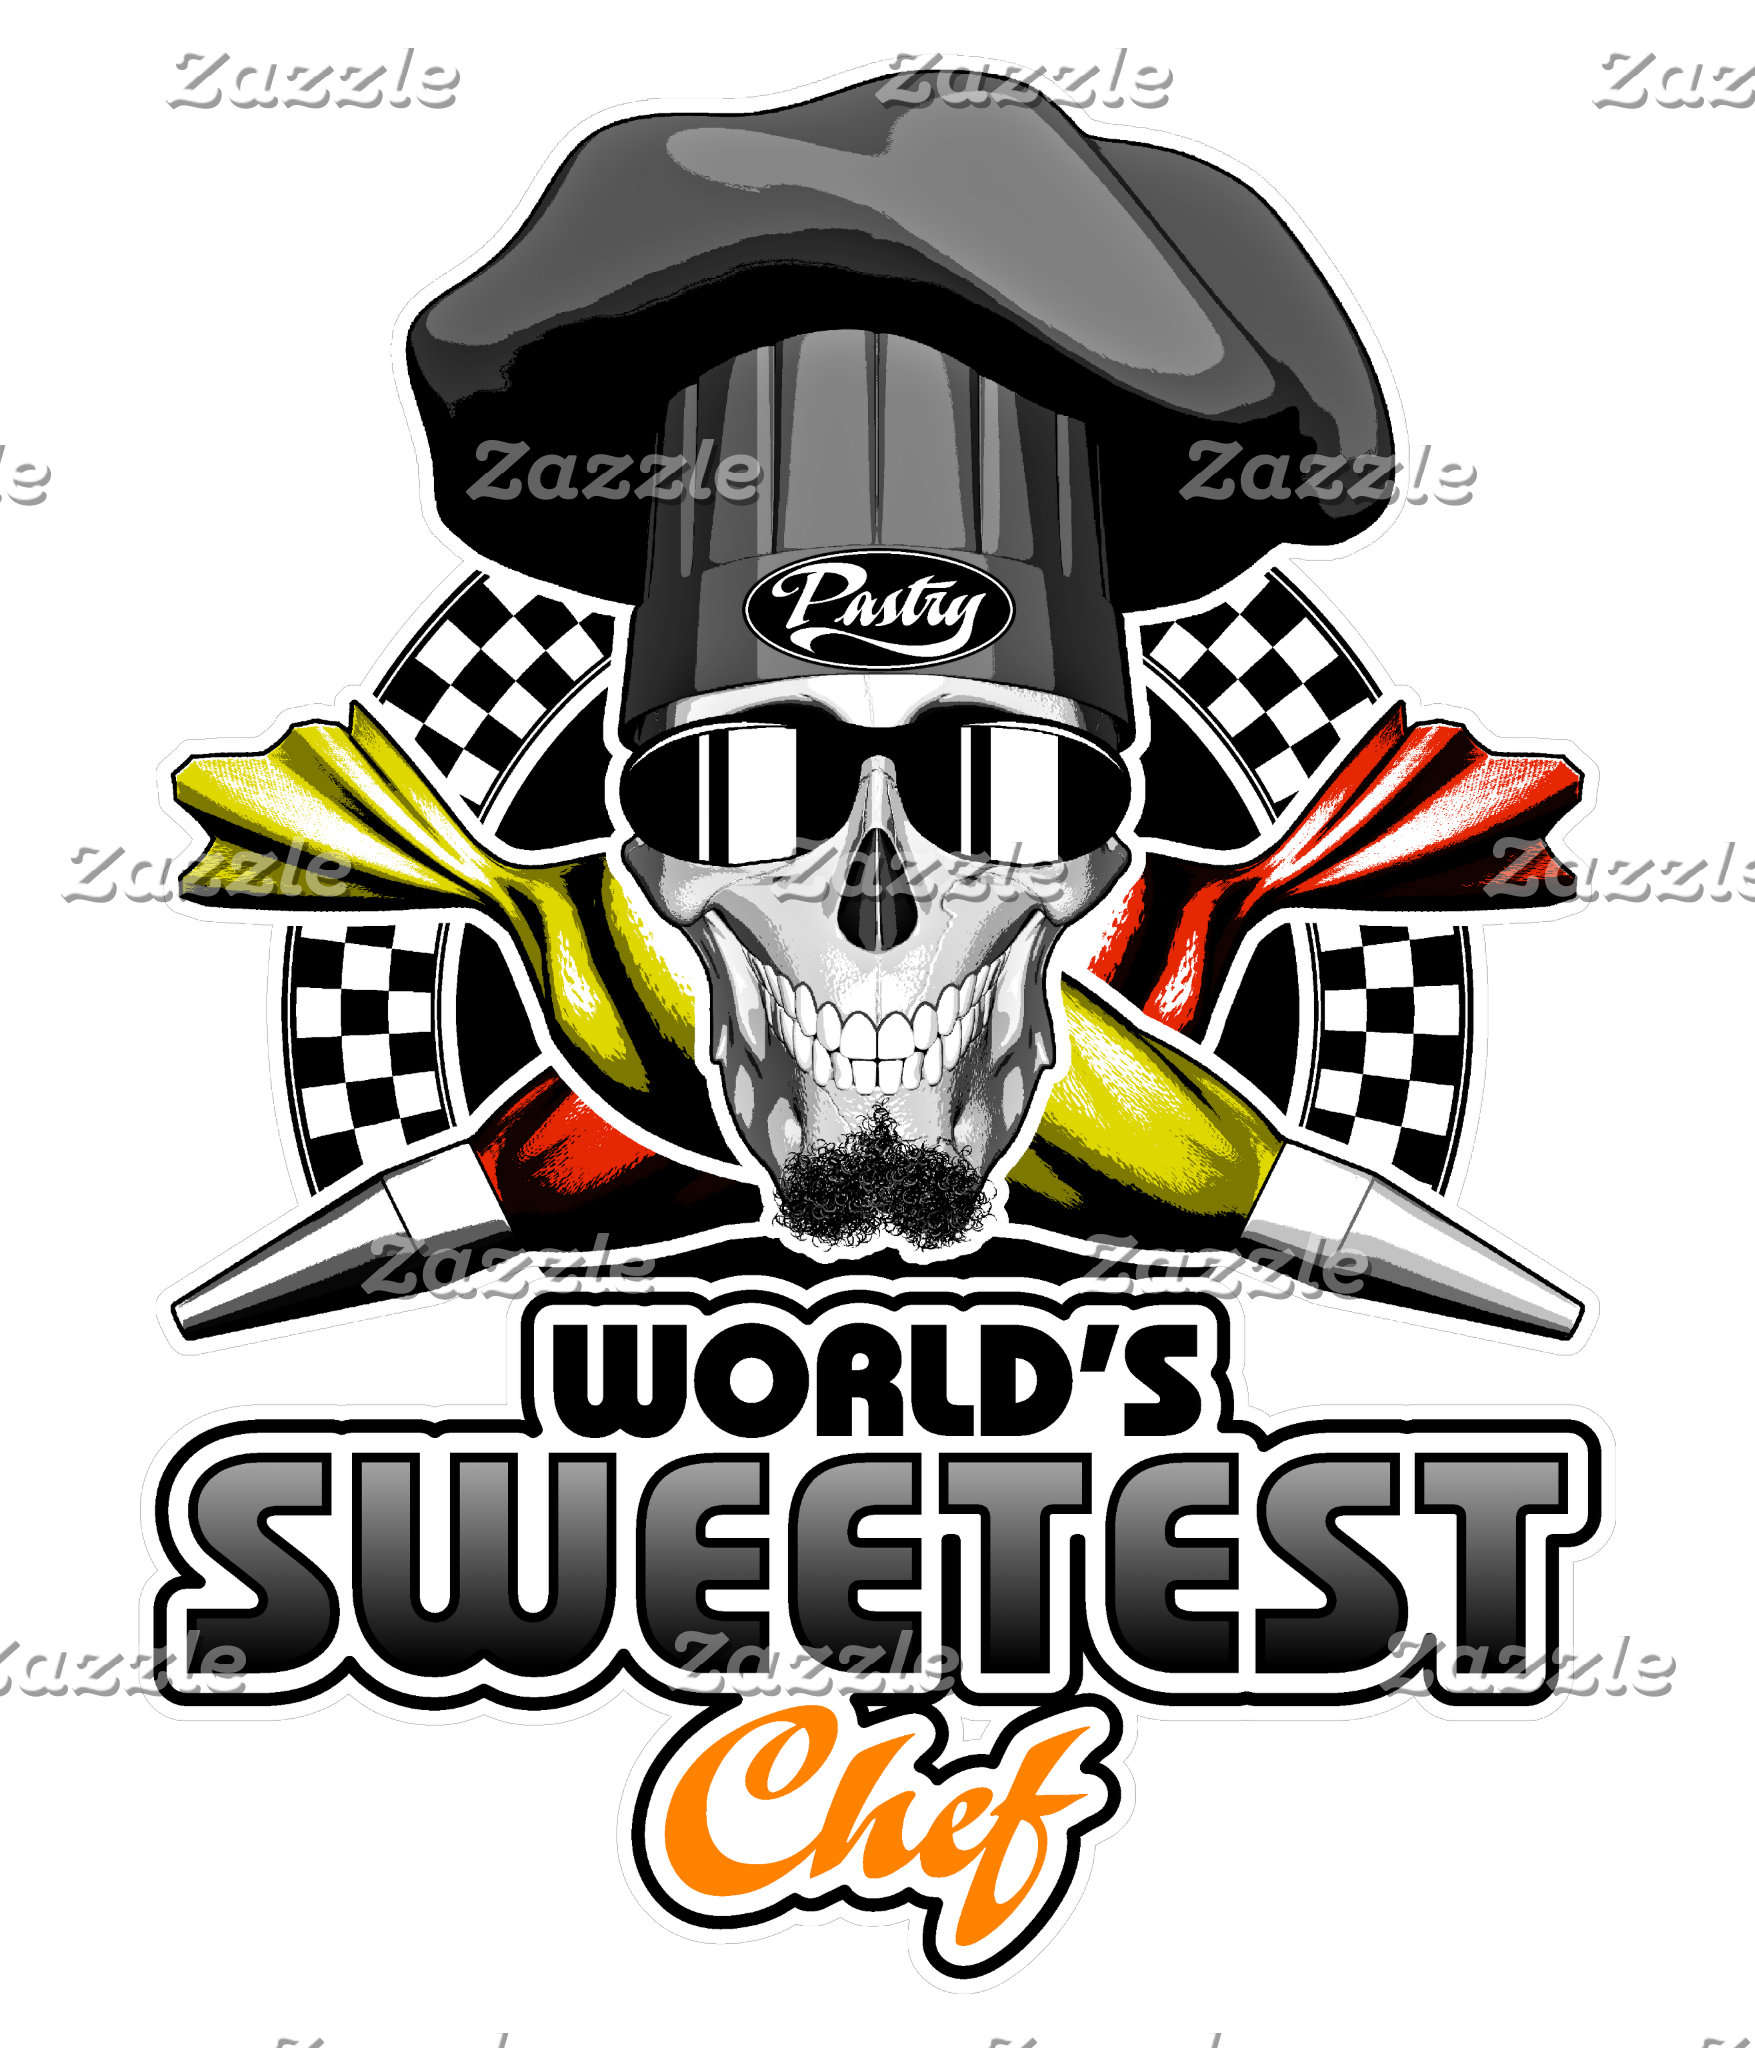 Pastry Chef: World's Sweetest Chef